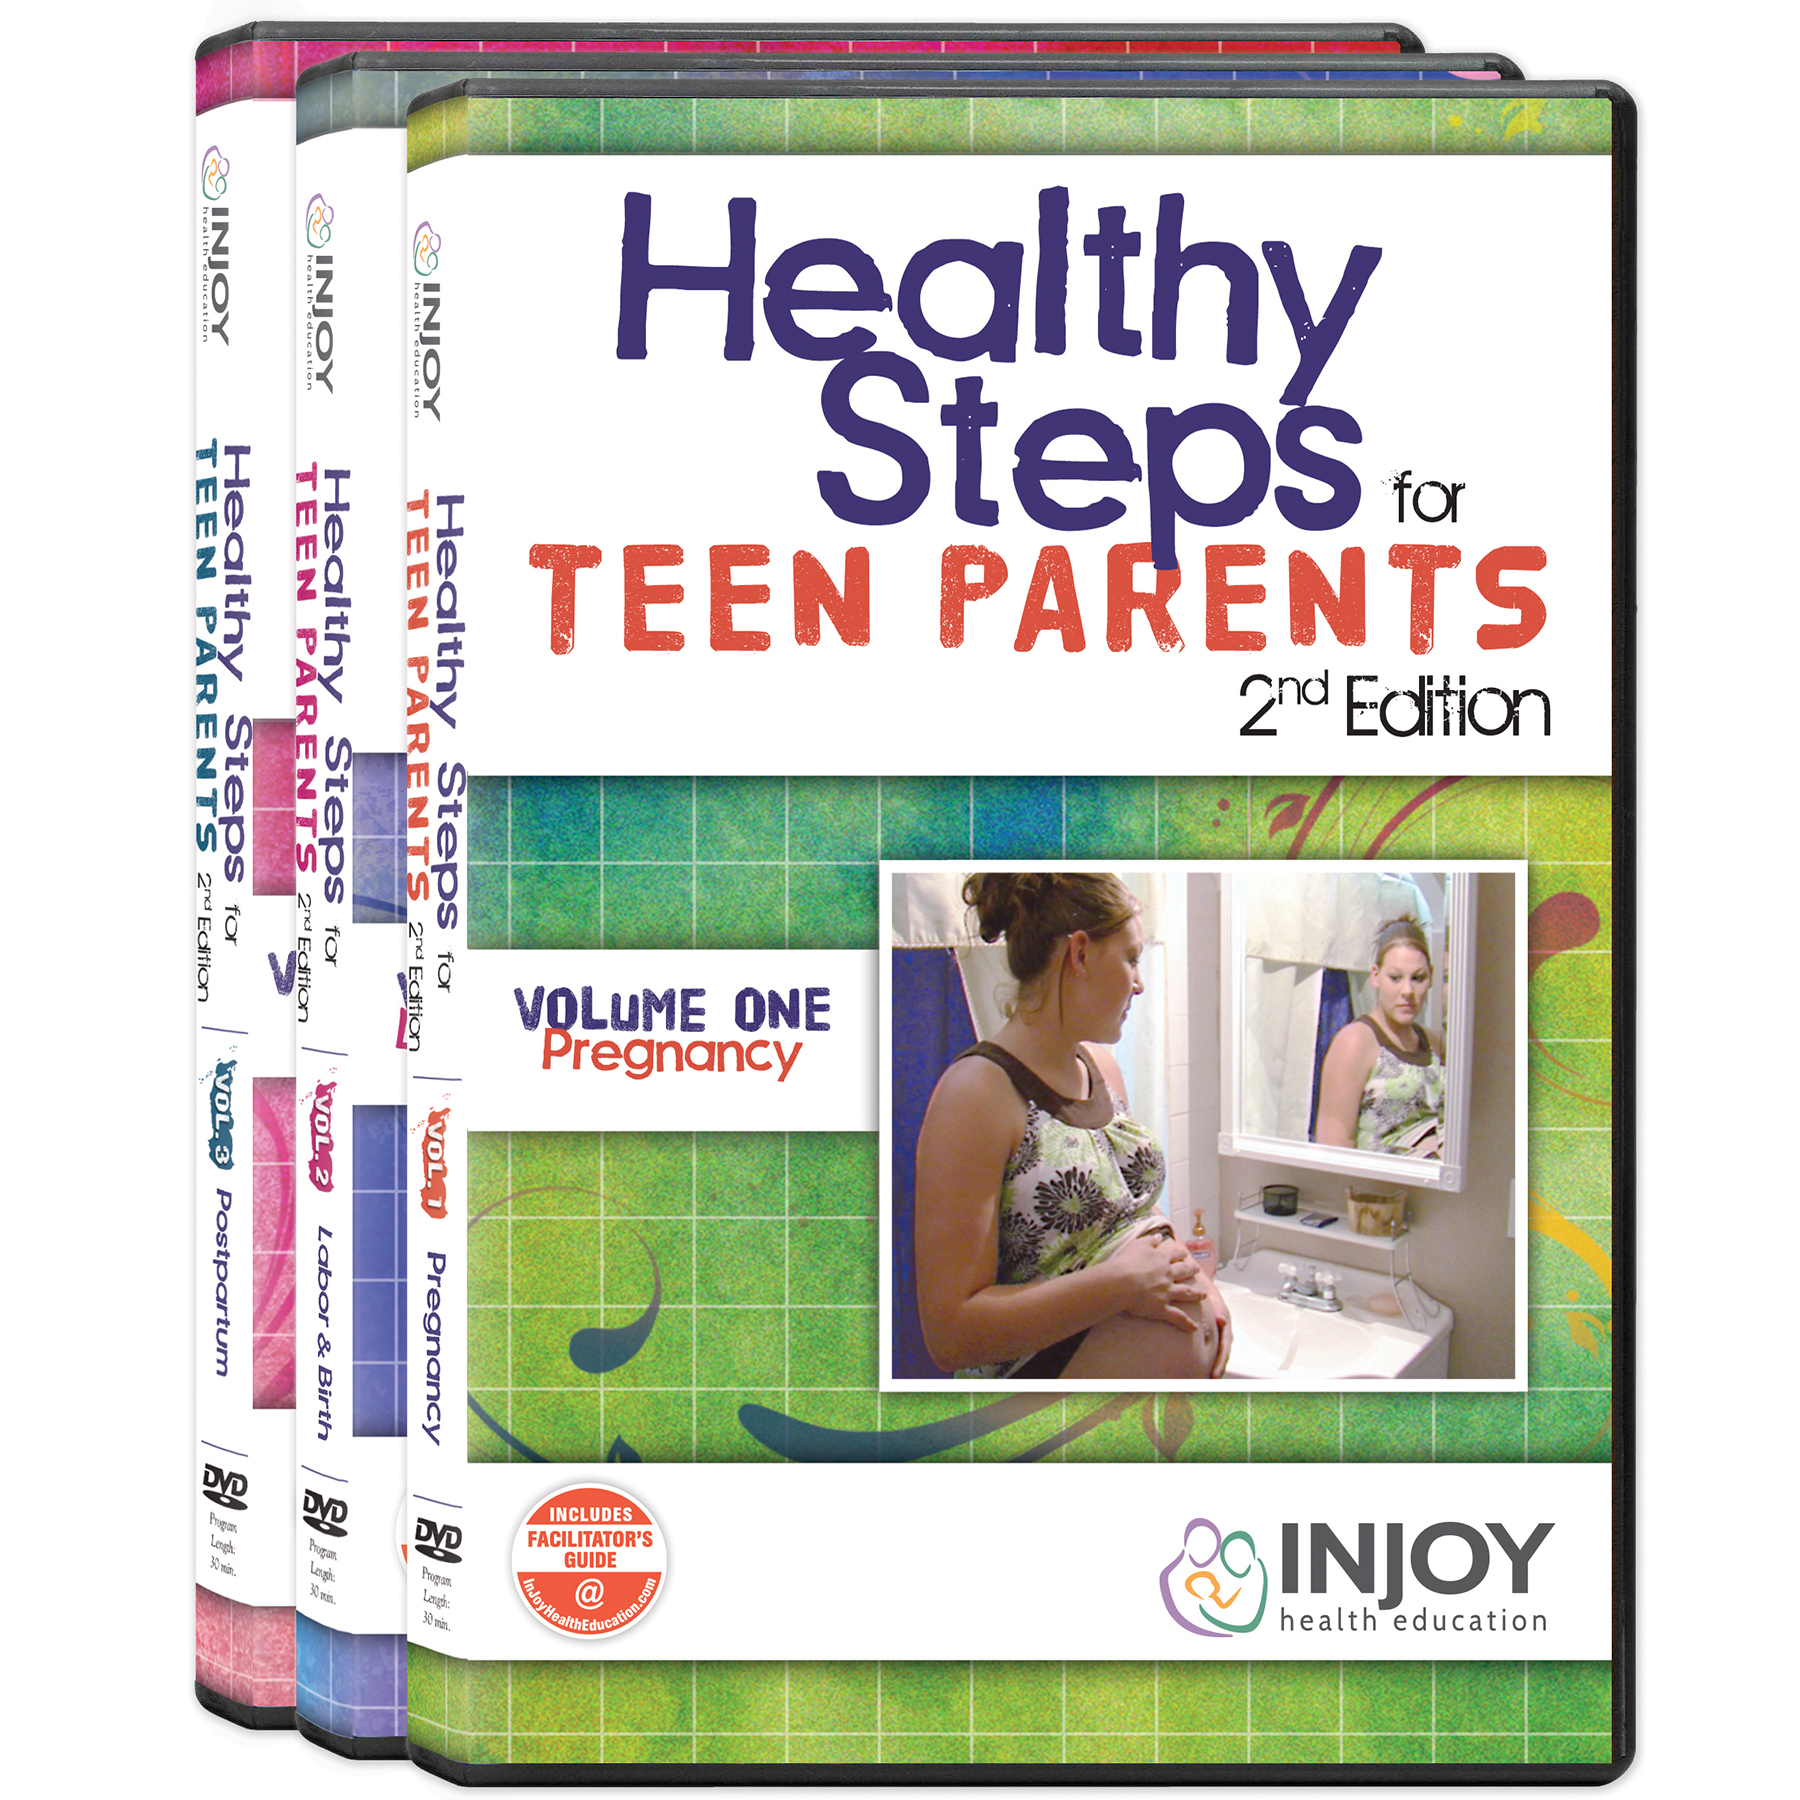 Healthy Steps for Teen Parents DVD set volume 1 cover-Pregnancy, Childbirth Graphics, 42093